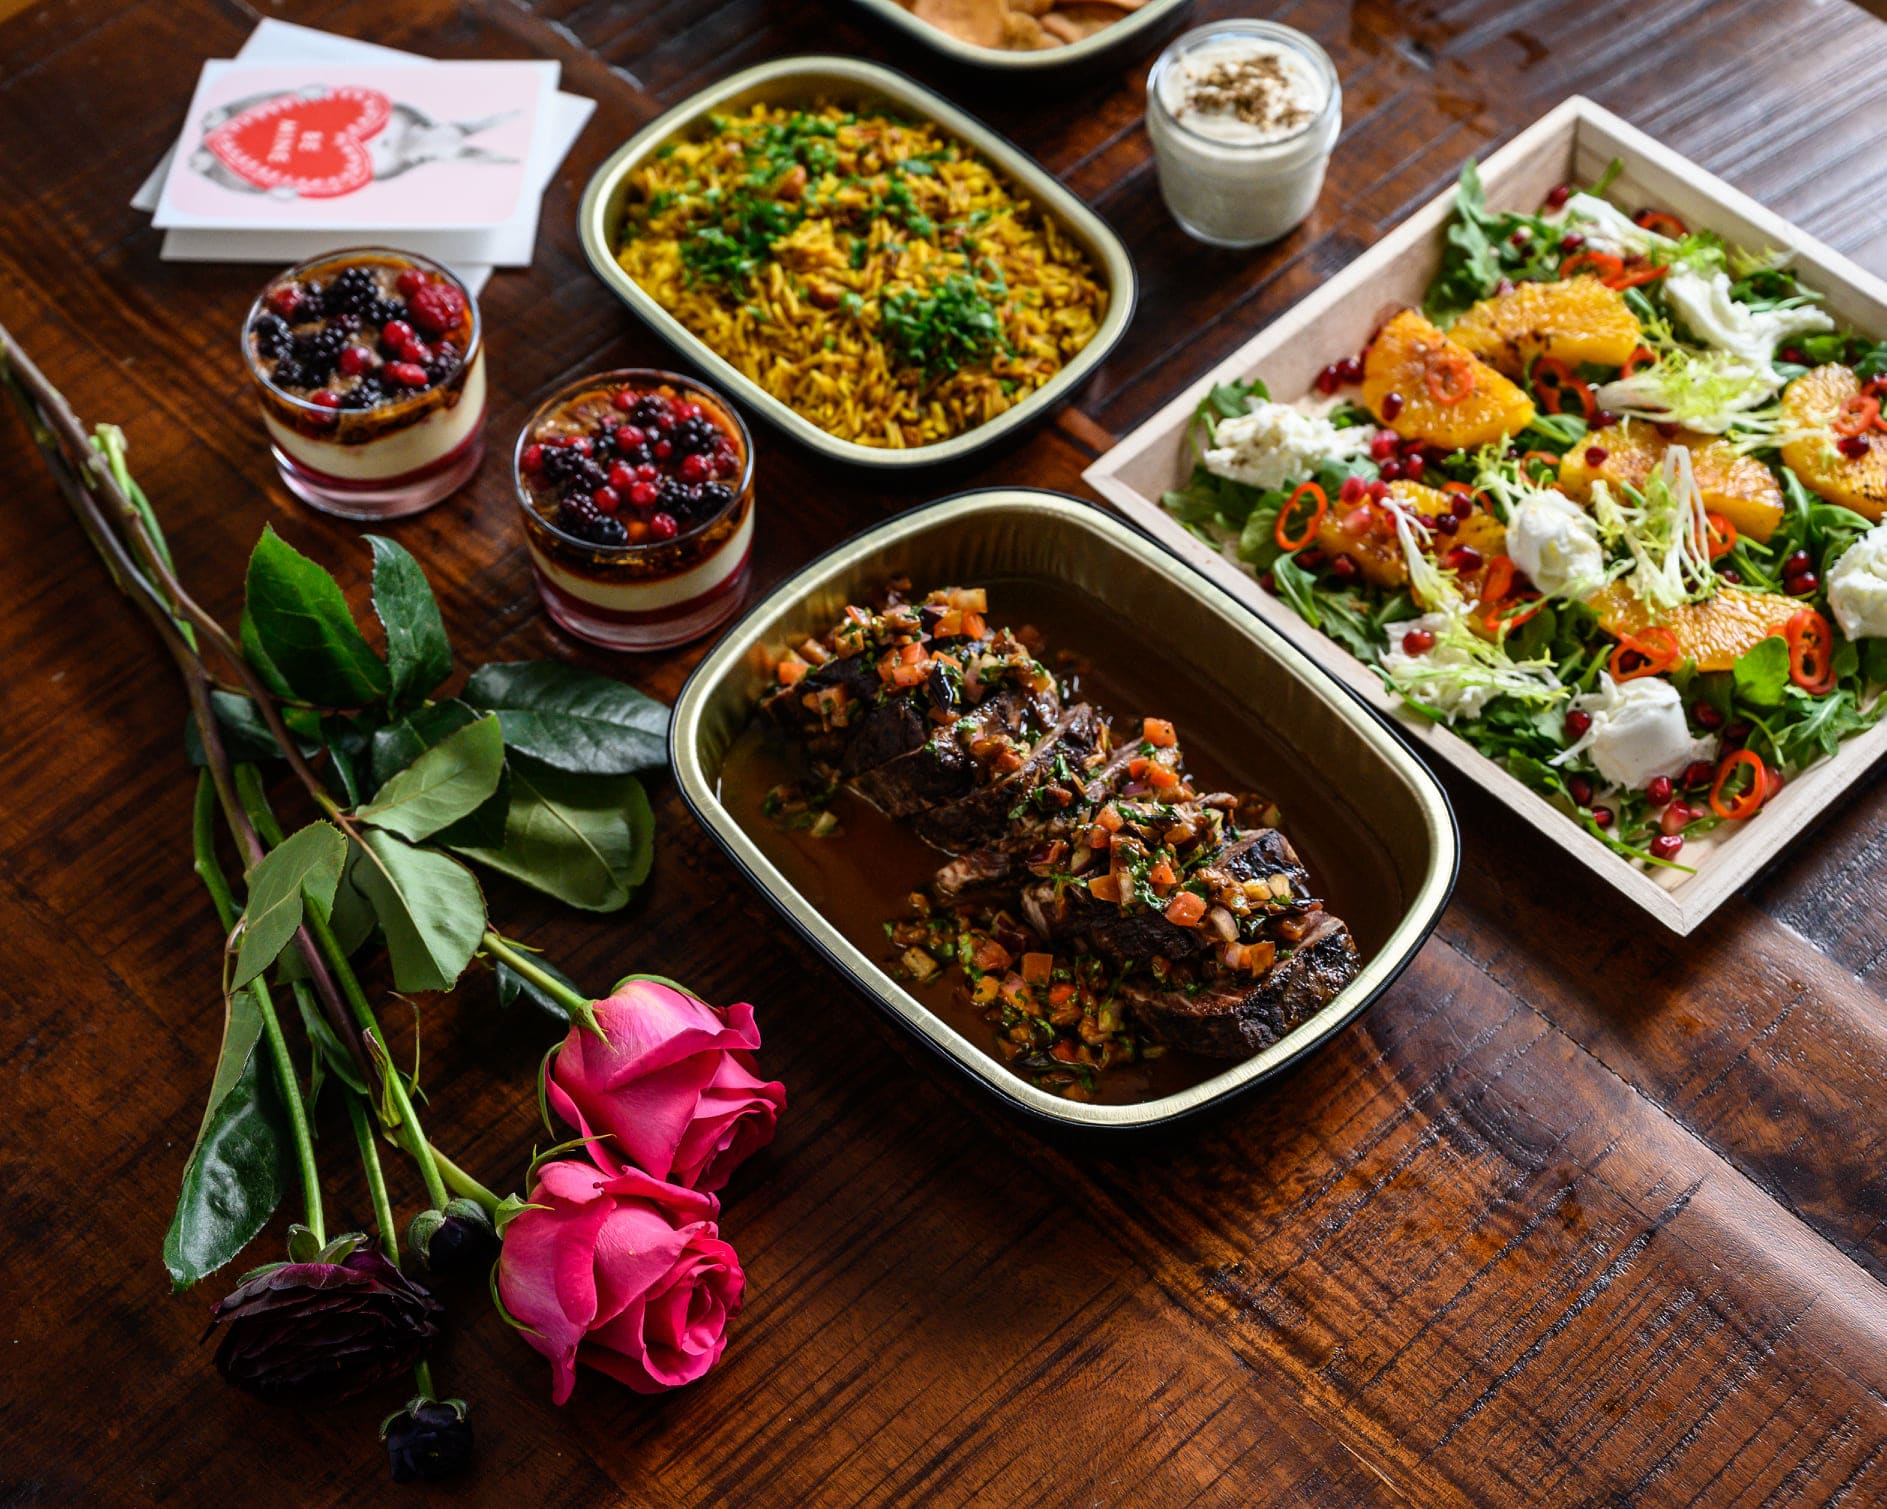 One Restaurant offering mother's day specials